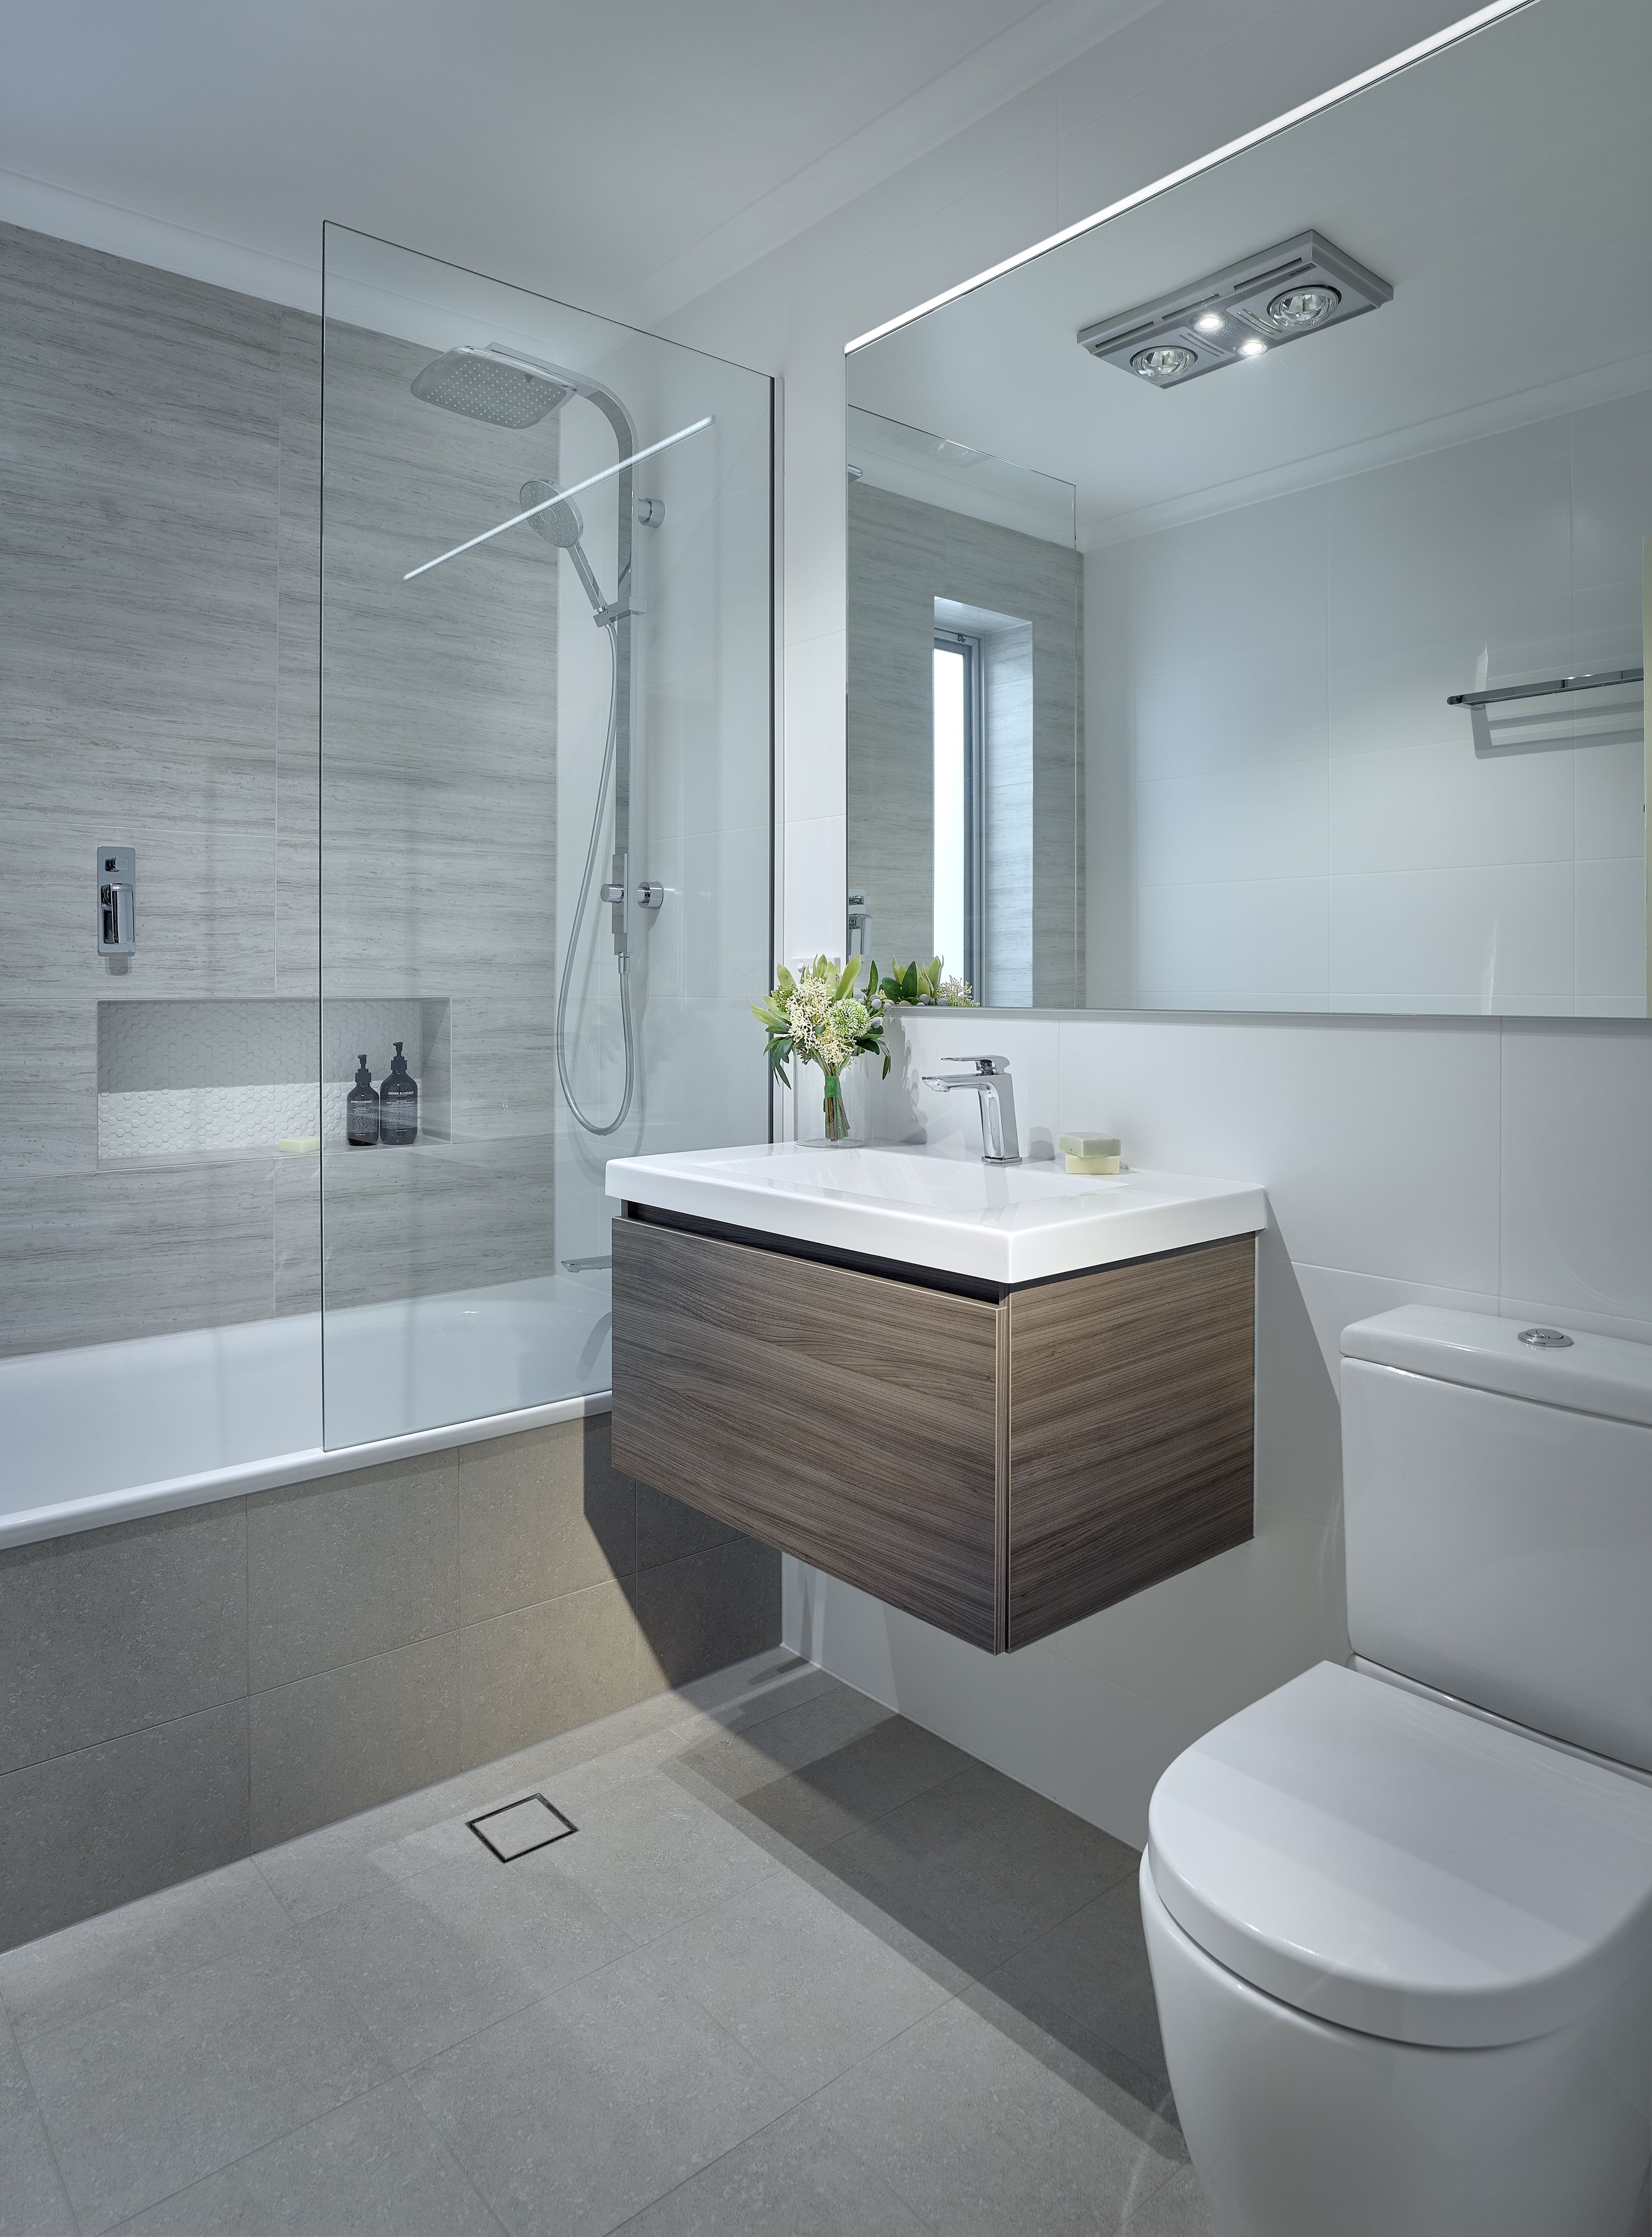 This small bathroom packs a punch! | hilton | Pinterest | Small ...